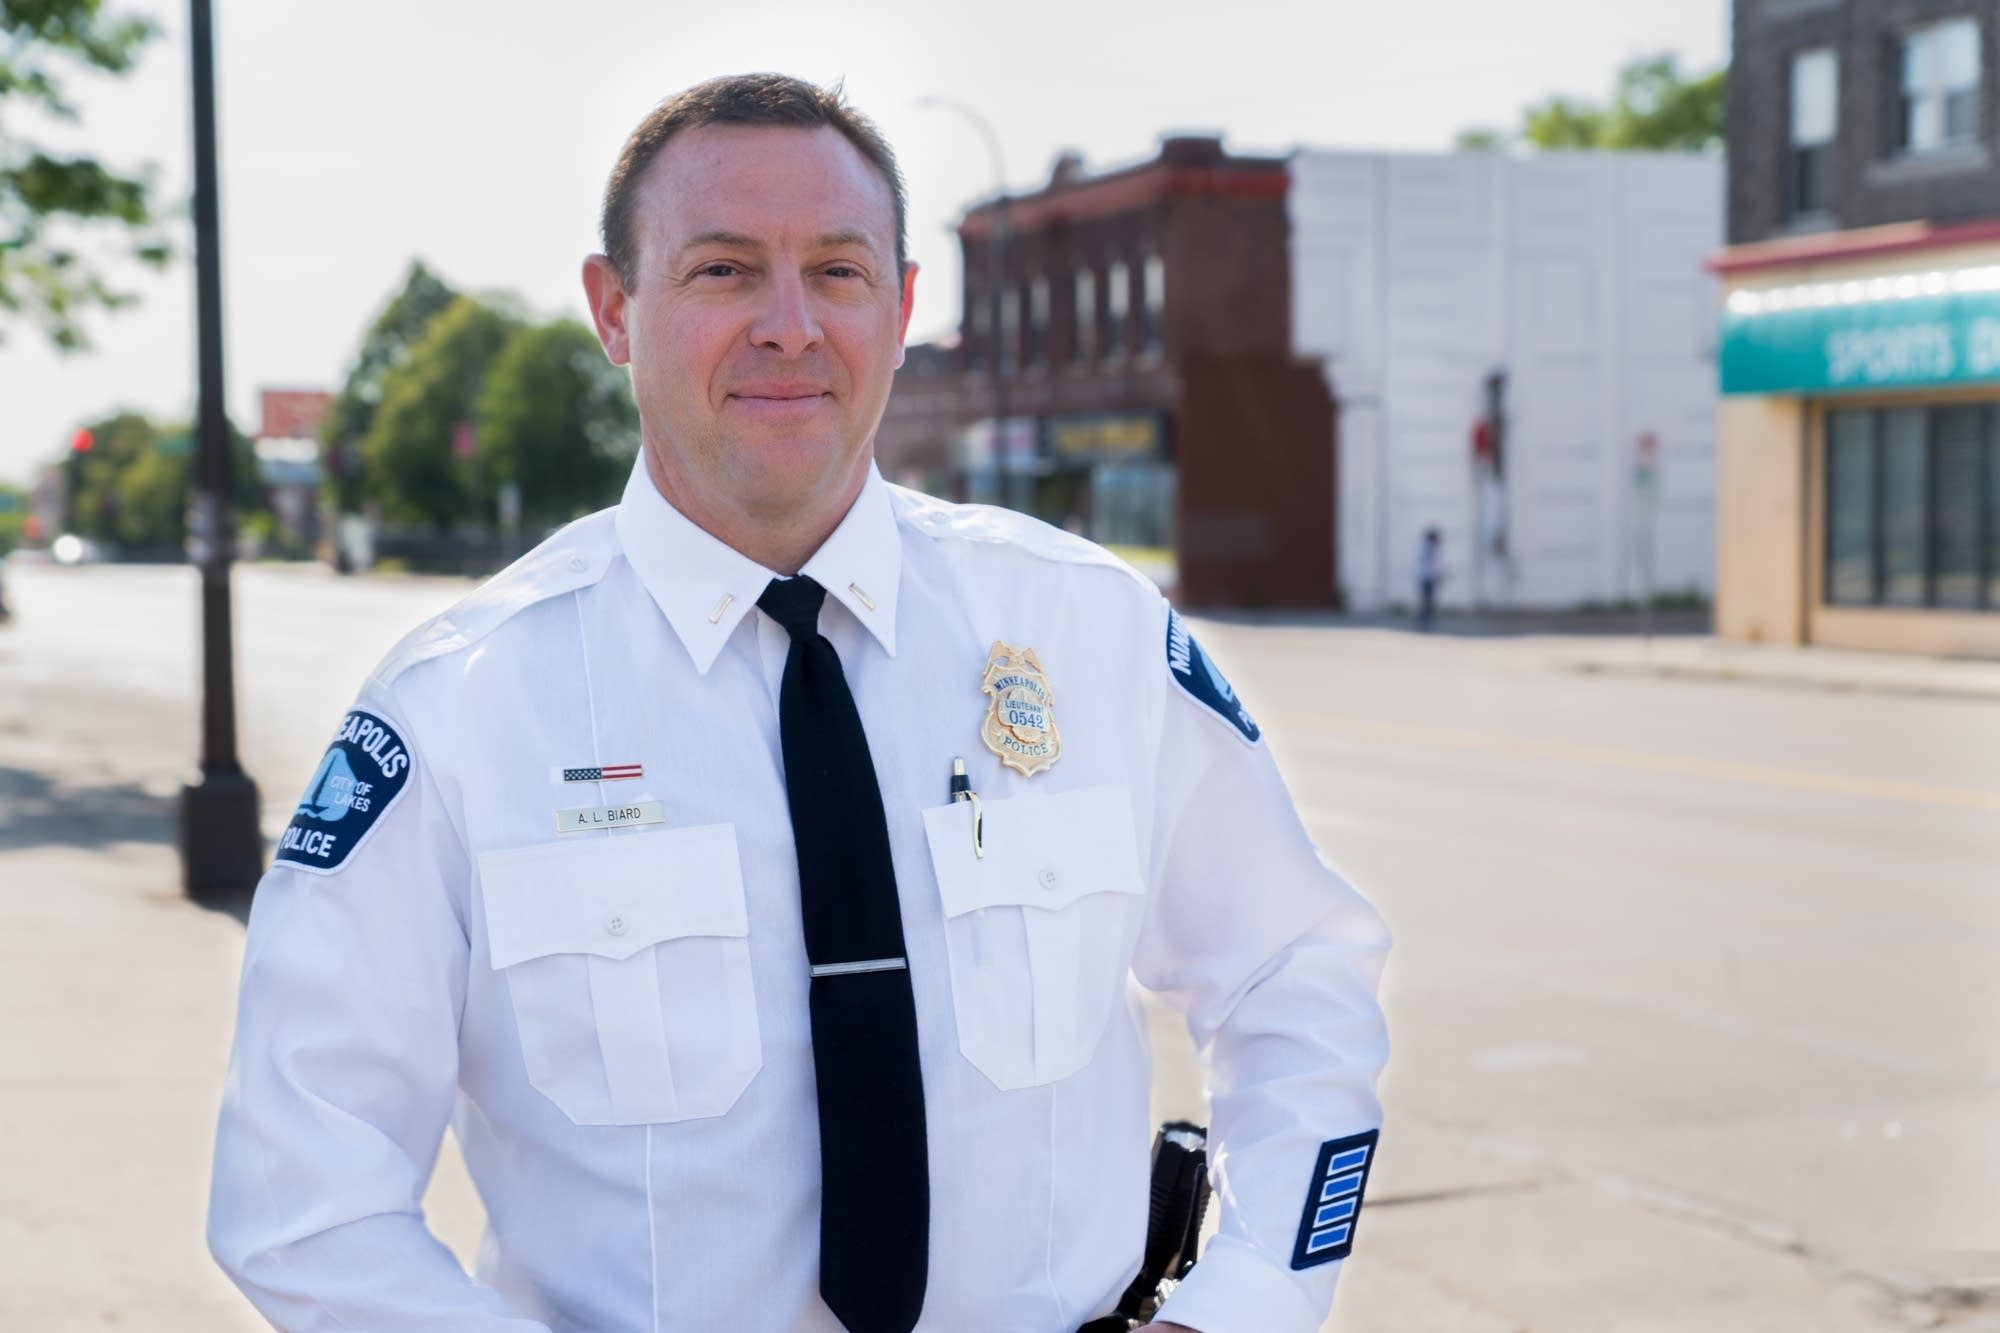 Aaron Biard will be the new Minneapolis Police Fourth Precinct Inspector.